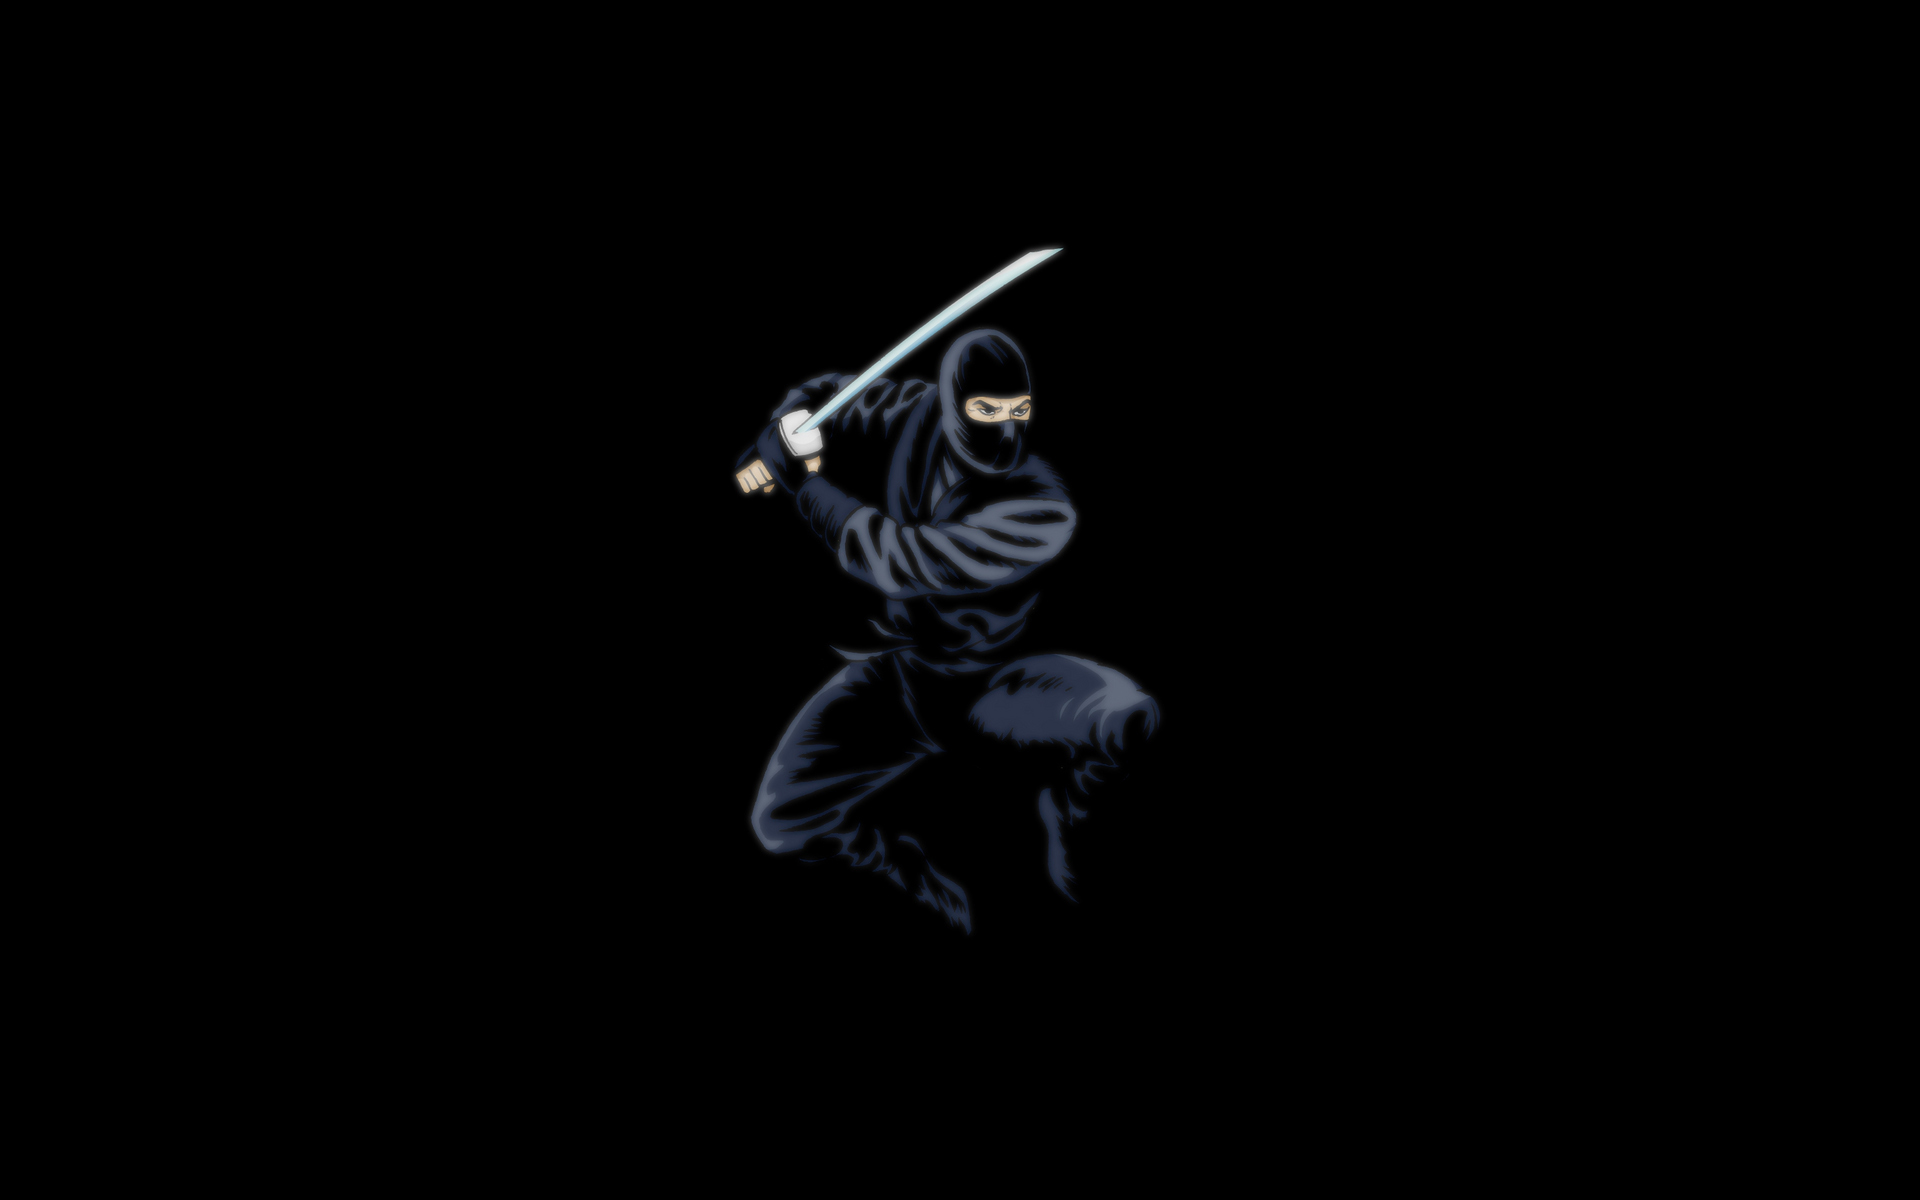 Ninja Wallpapers Pictures Images HD Wallpapers Download Free Images Wallpaper [1000image.com]